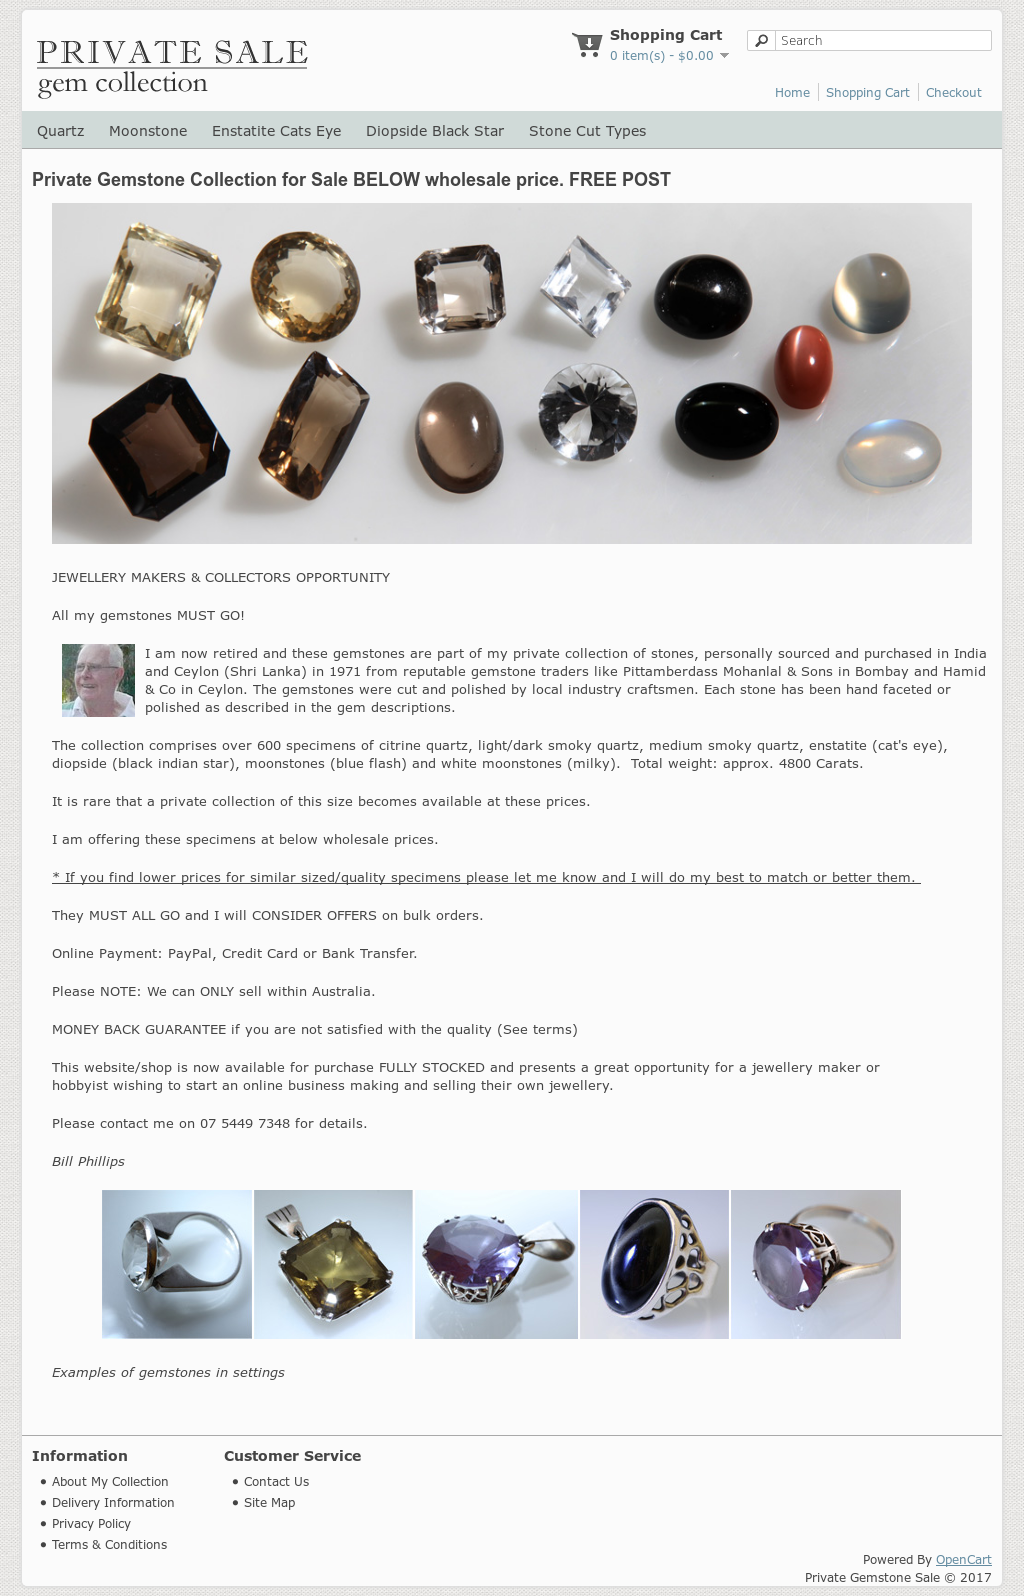 Private Gemstone Sale Competitors, Revenue and Employees